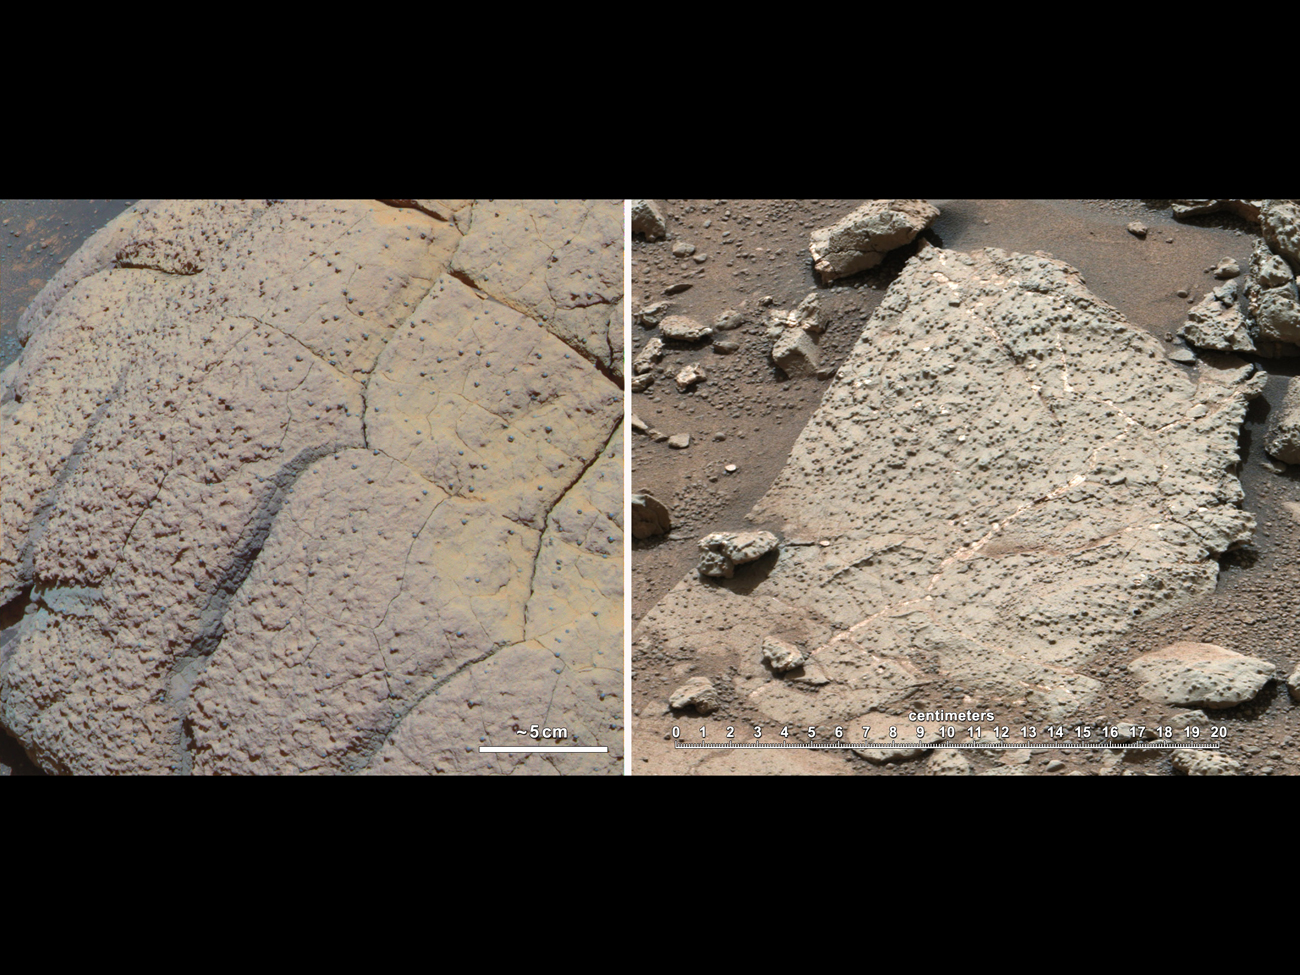 Ancient Mars Could Have Supported Life, Curiosity Rover Discovers